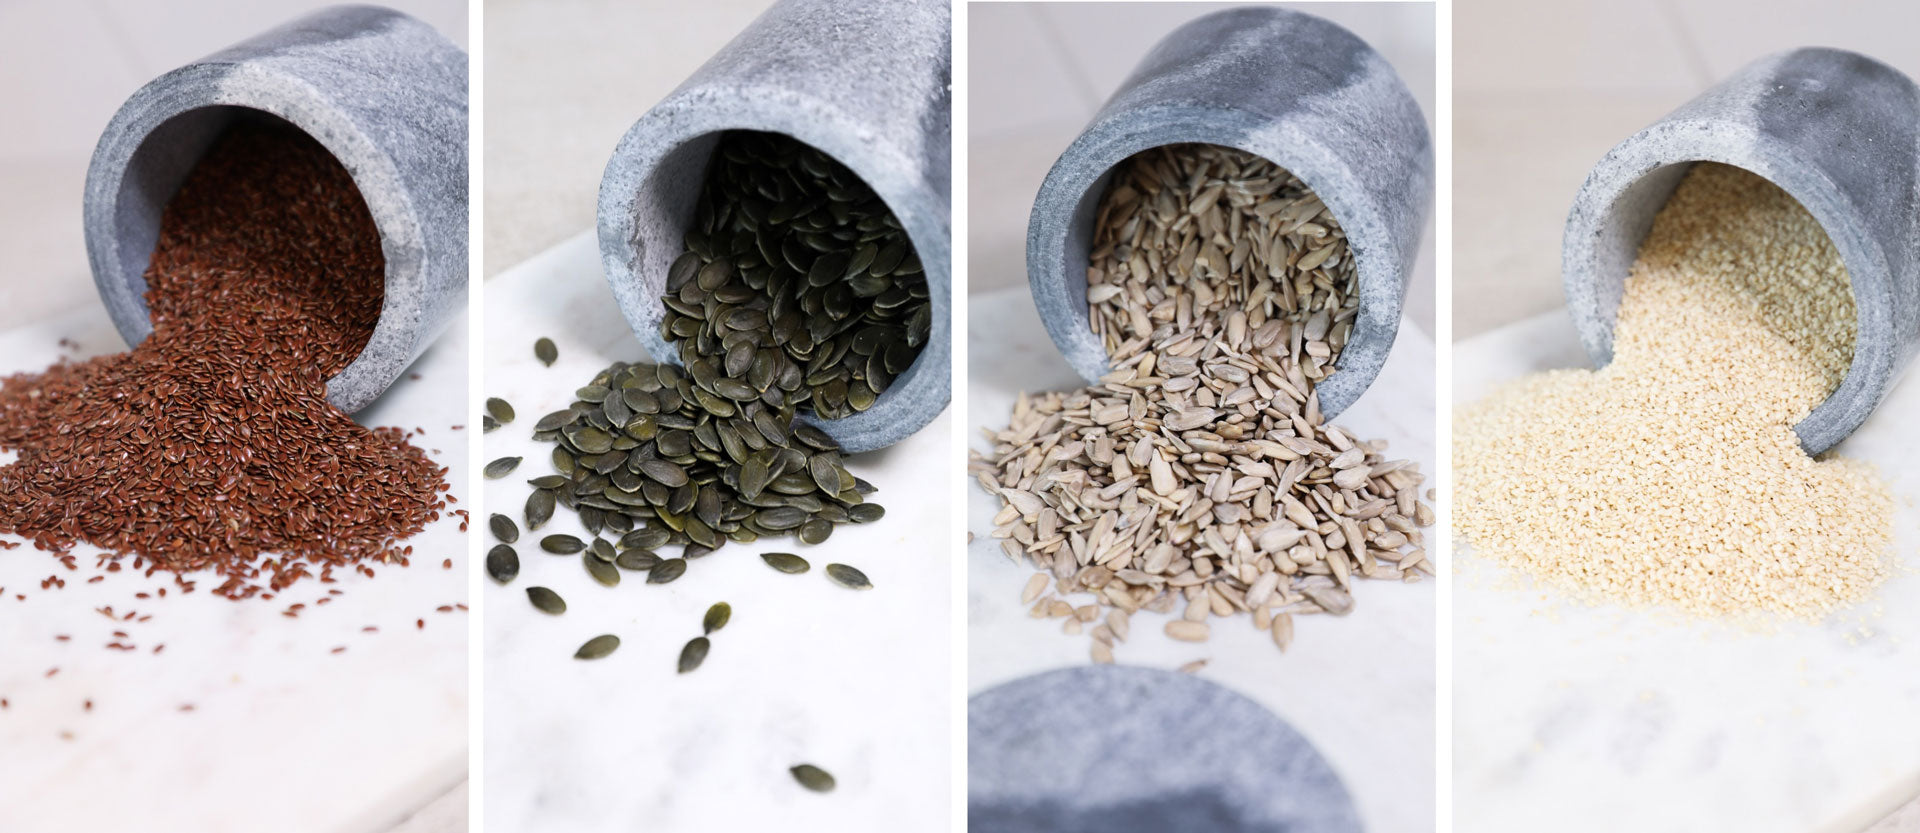 what-is-seed-cycling?-and-how-does-it-help-to-balance-hormones?